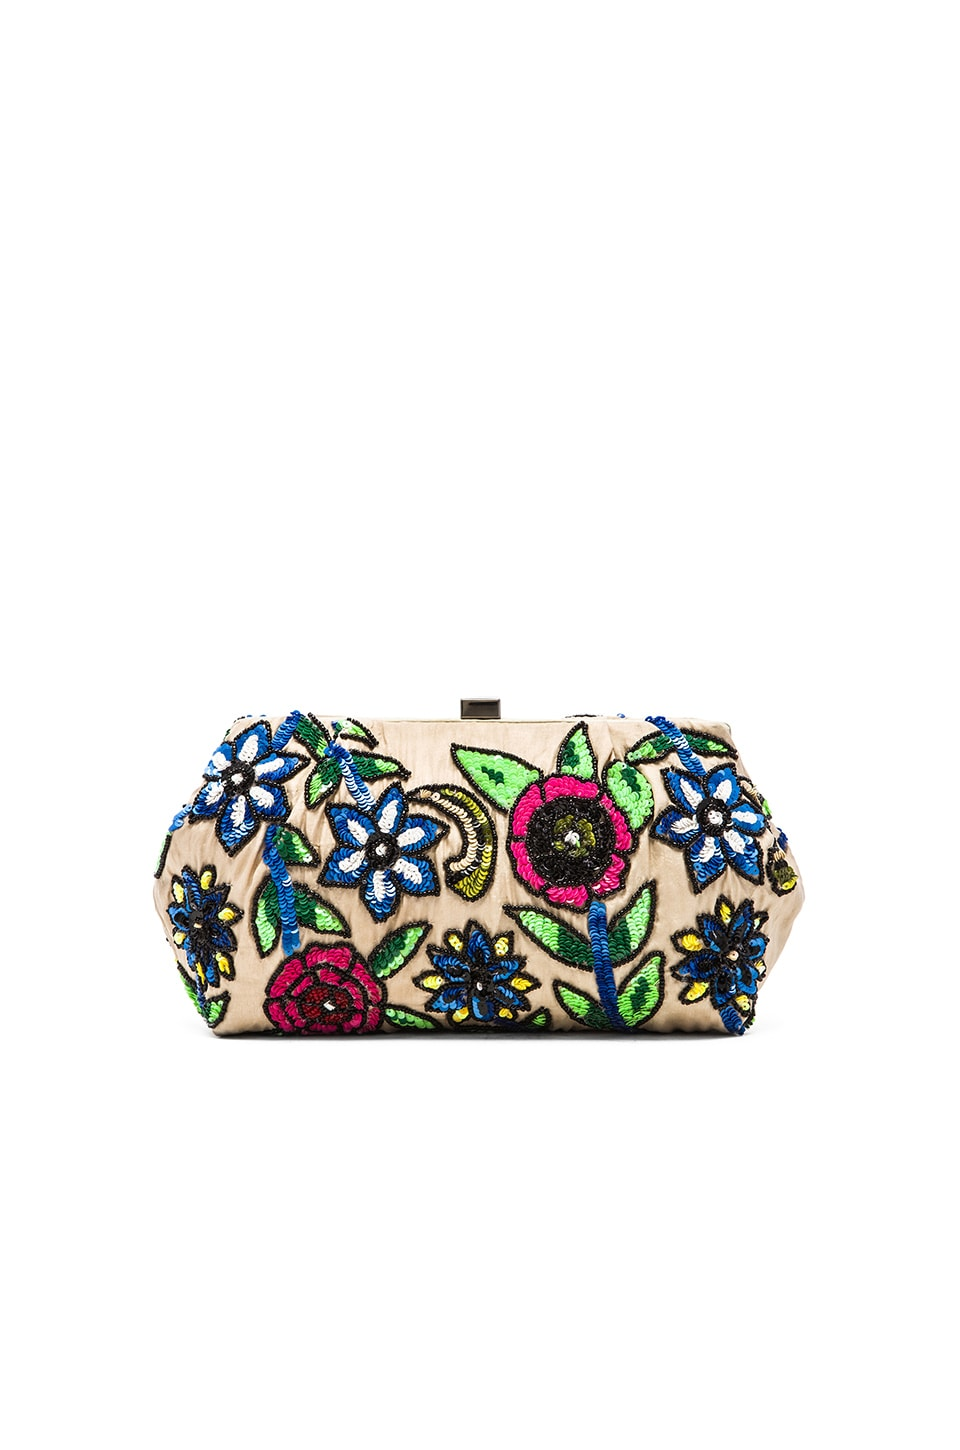 Santi Sequin Floral Clutch in Multi